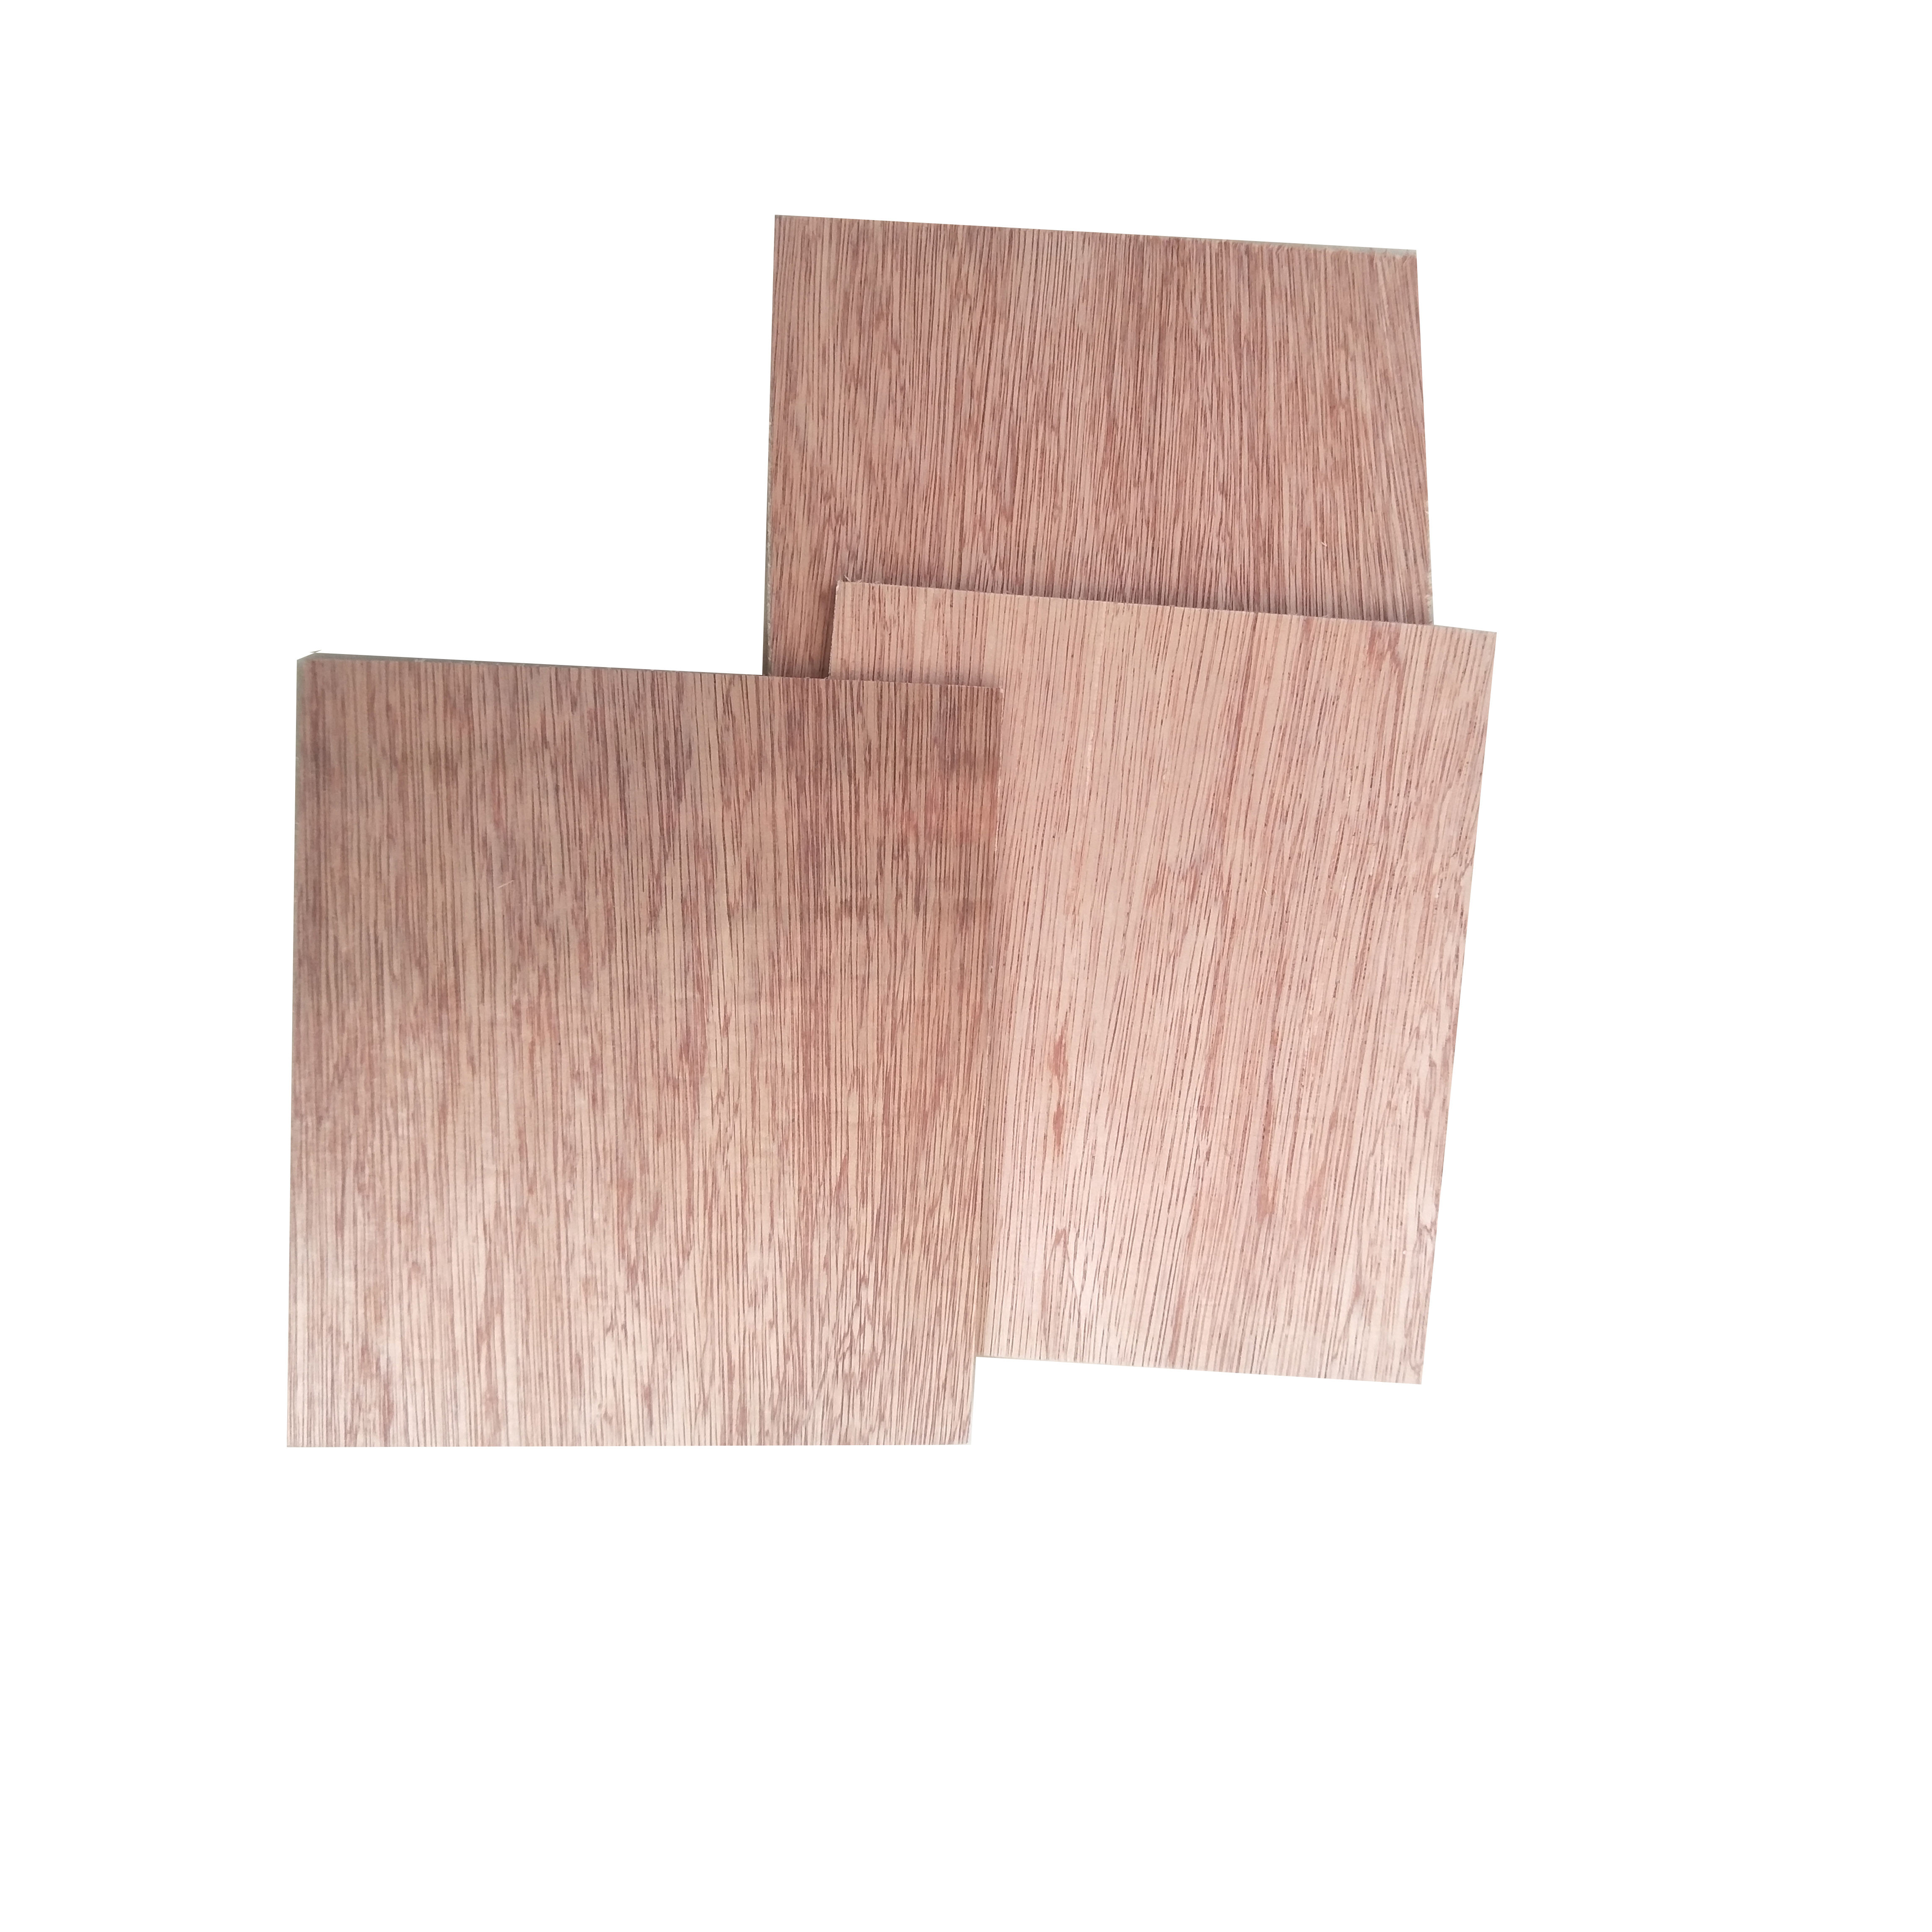 High Technological 1 Pc Ply Wood Water Resistance Marine Larch Red Oak Plywood For Construction